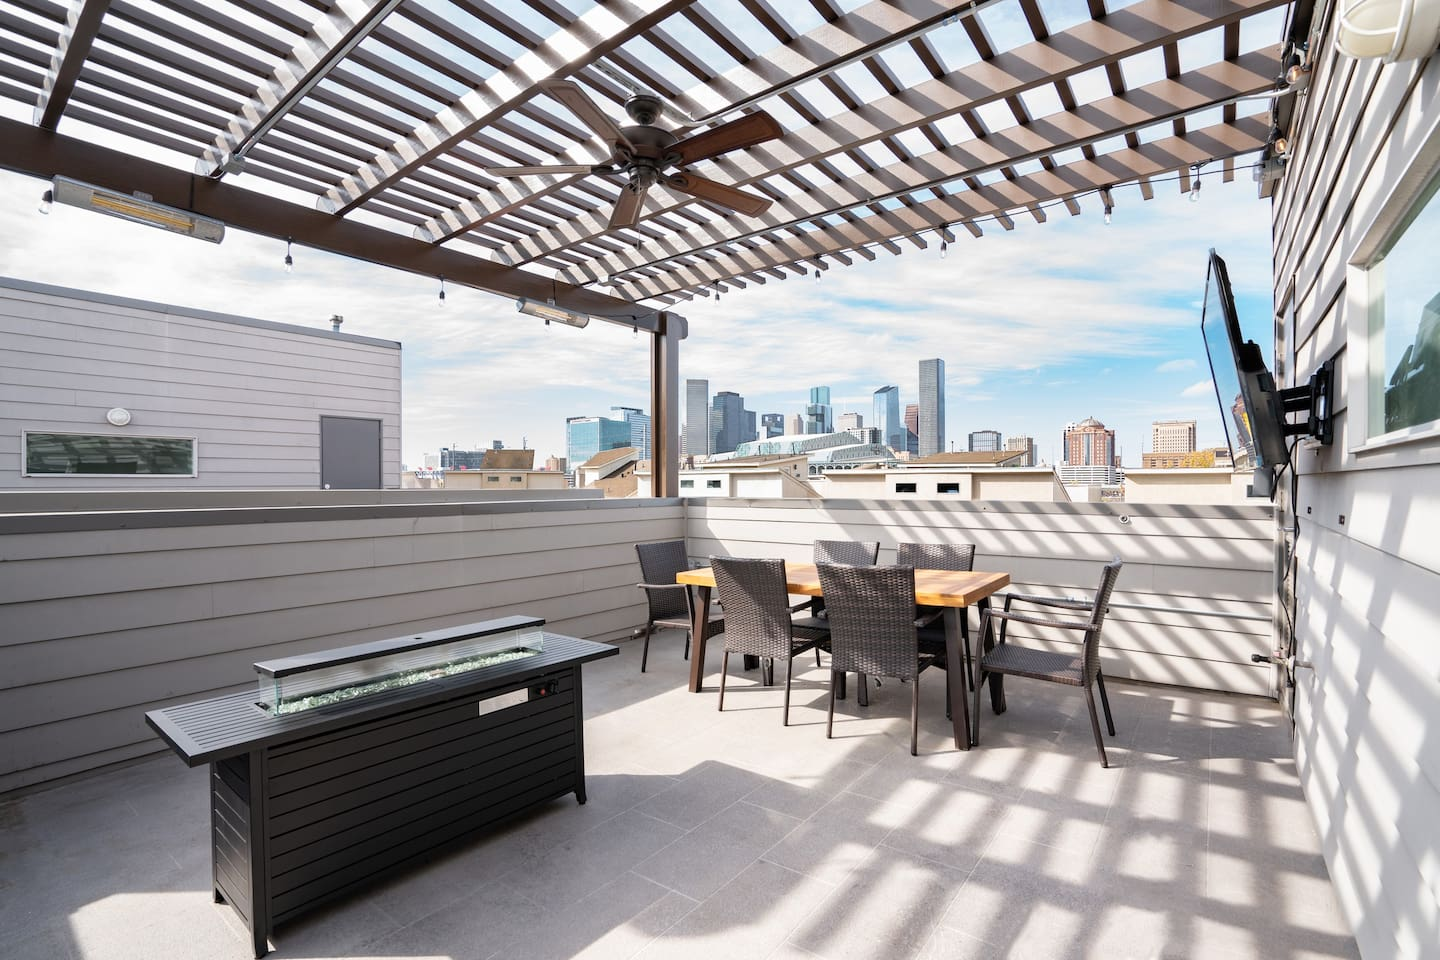 Rooftop decks with stunning city views (this area is available as an additional add-on & not included in basic accommodations, please inquire with host about pricing)